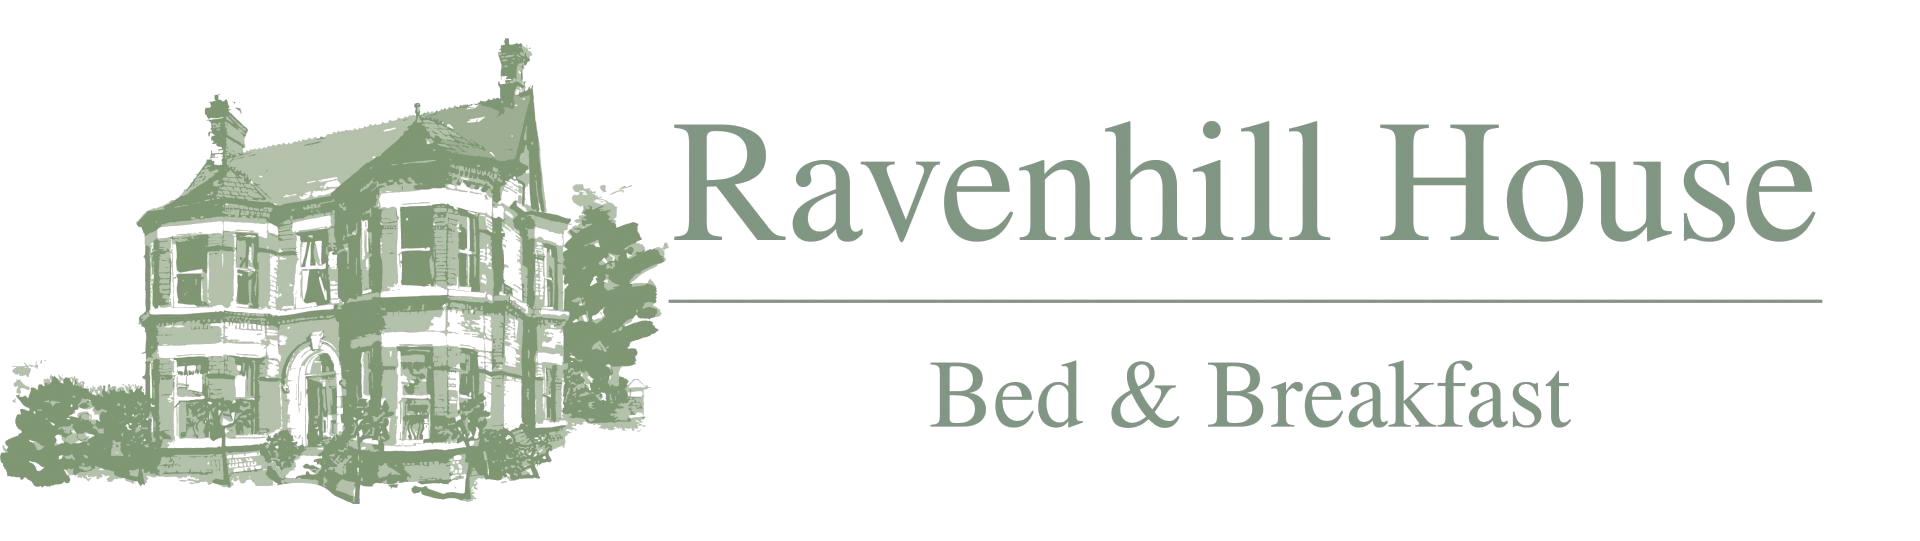 Belfast Hotel For Hotel In Belfast Try Ravenhill Guest House Bt6 0bz